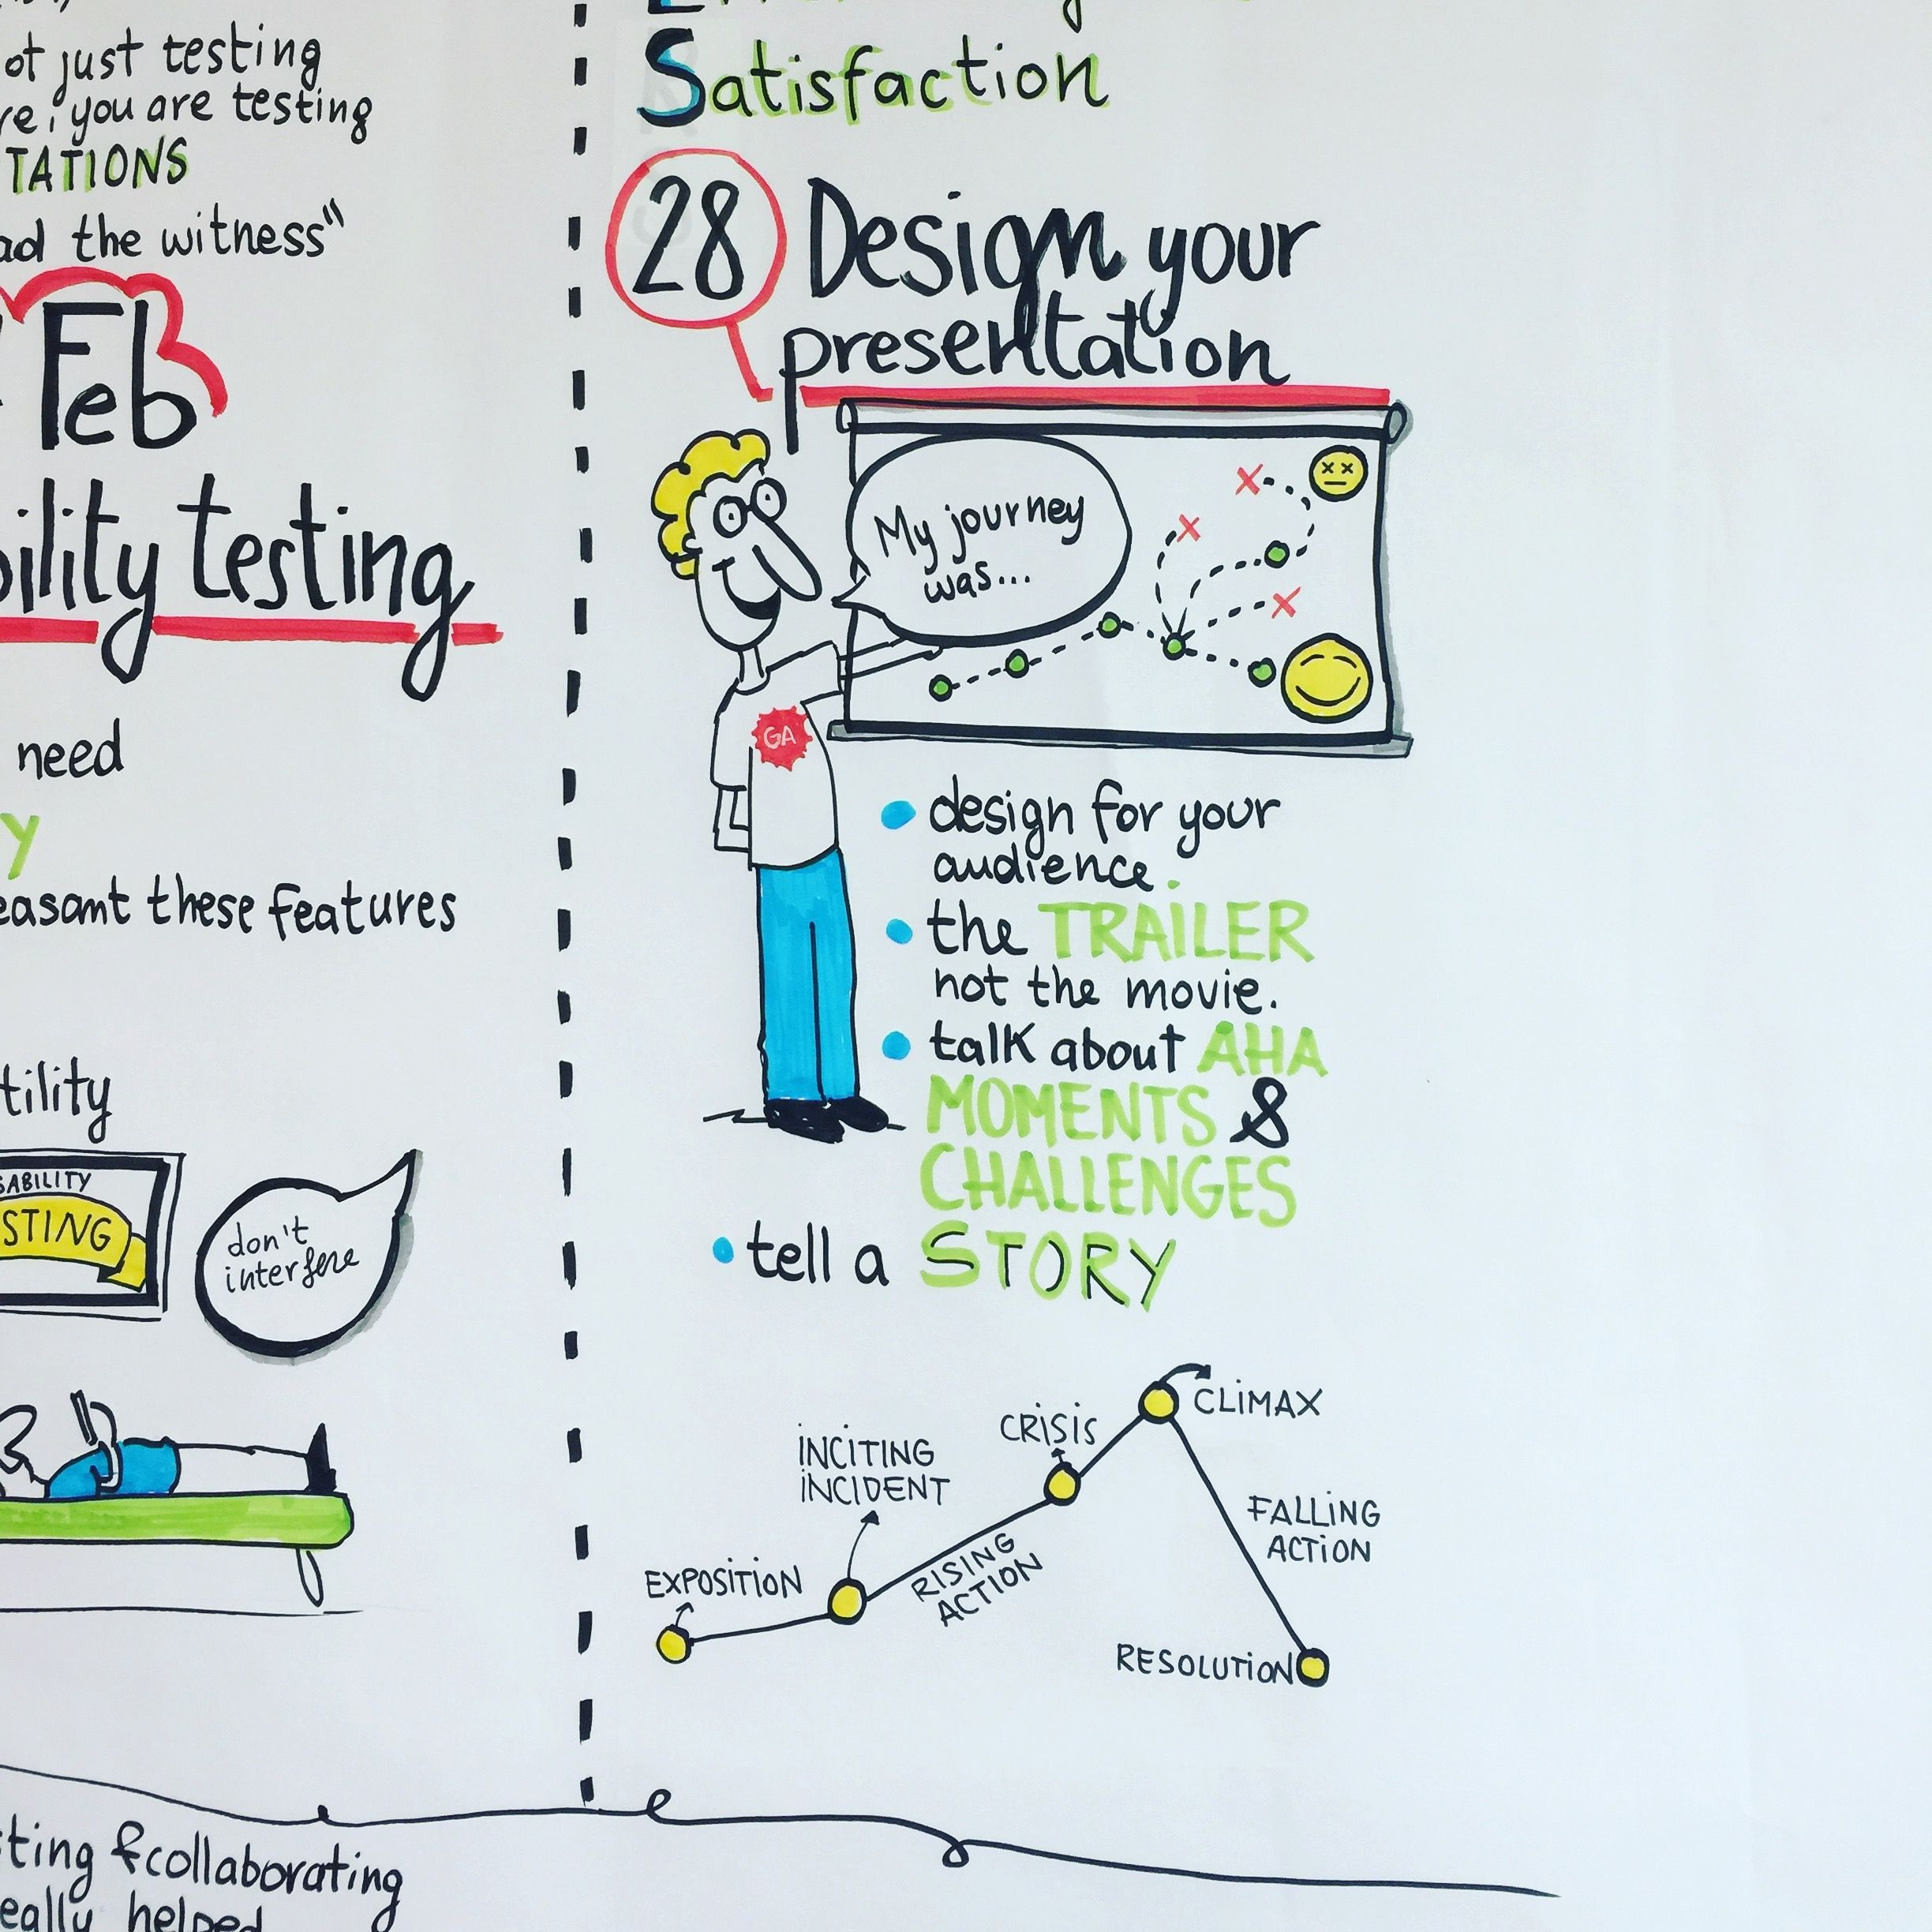 Saramichelazzo  Graphic Recording For General Assembly London